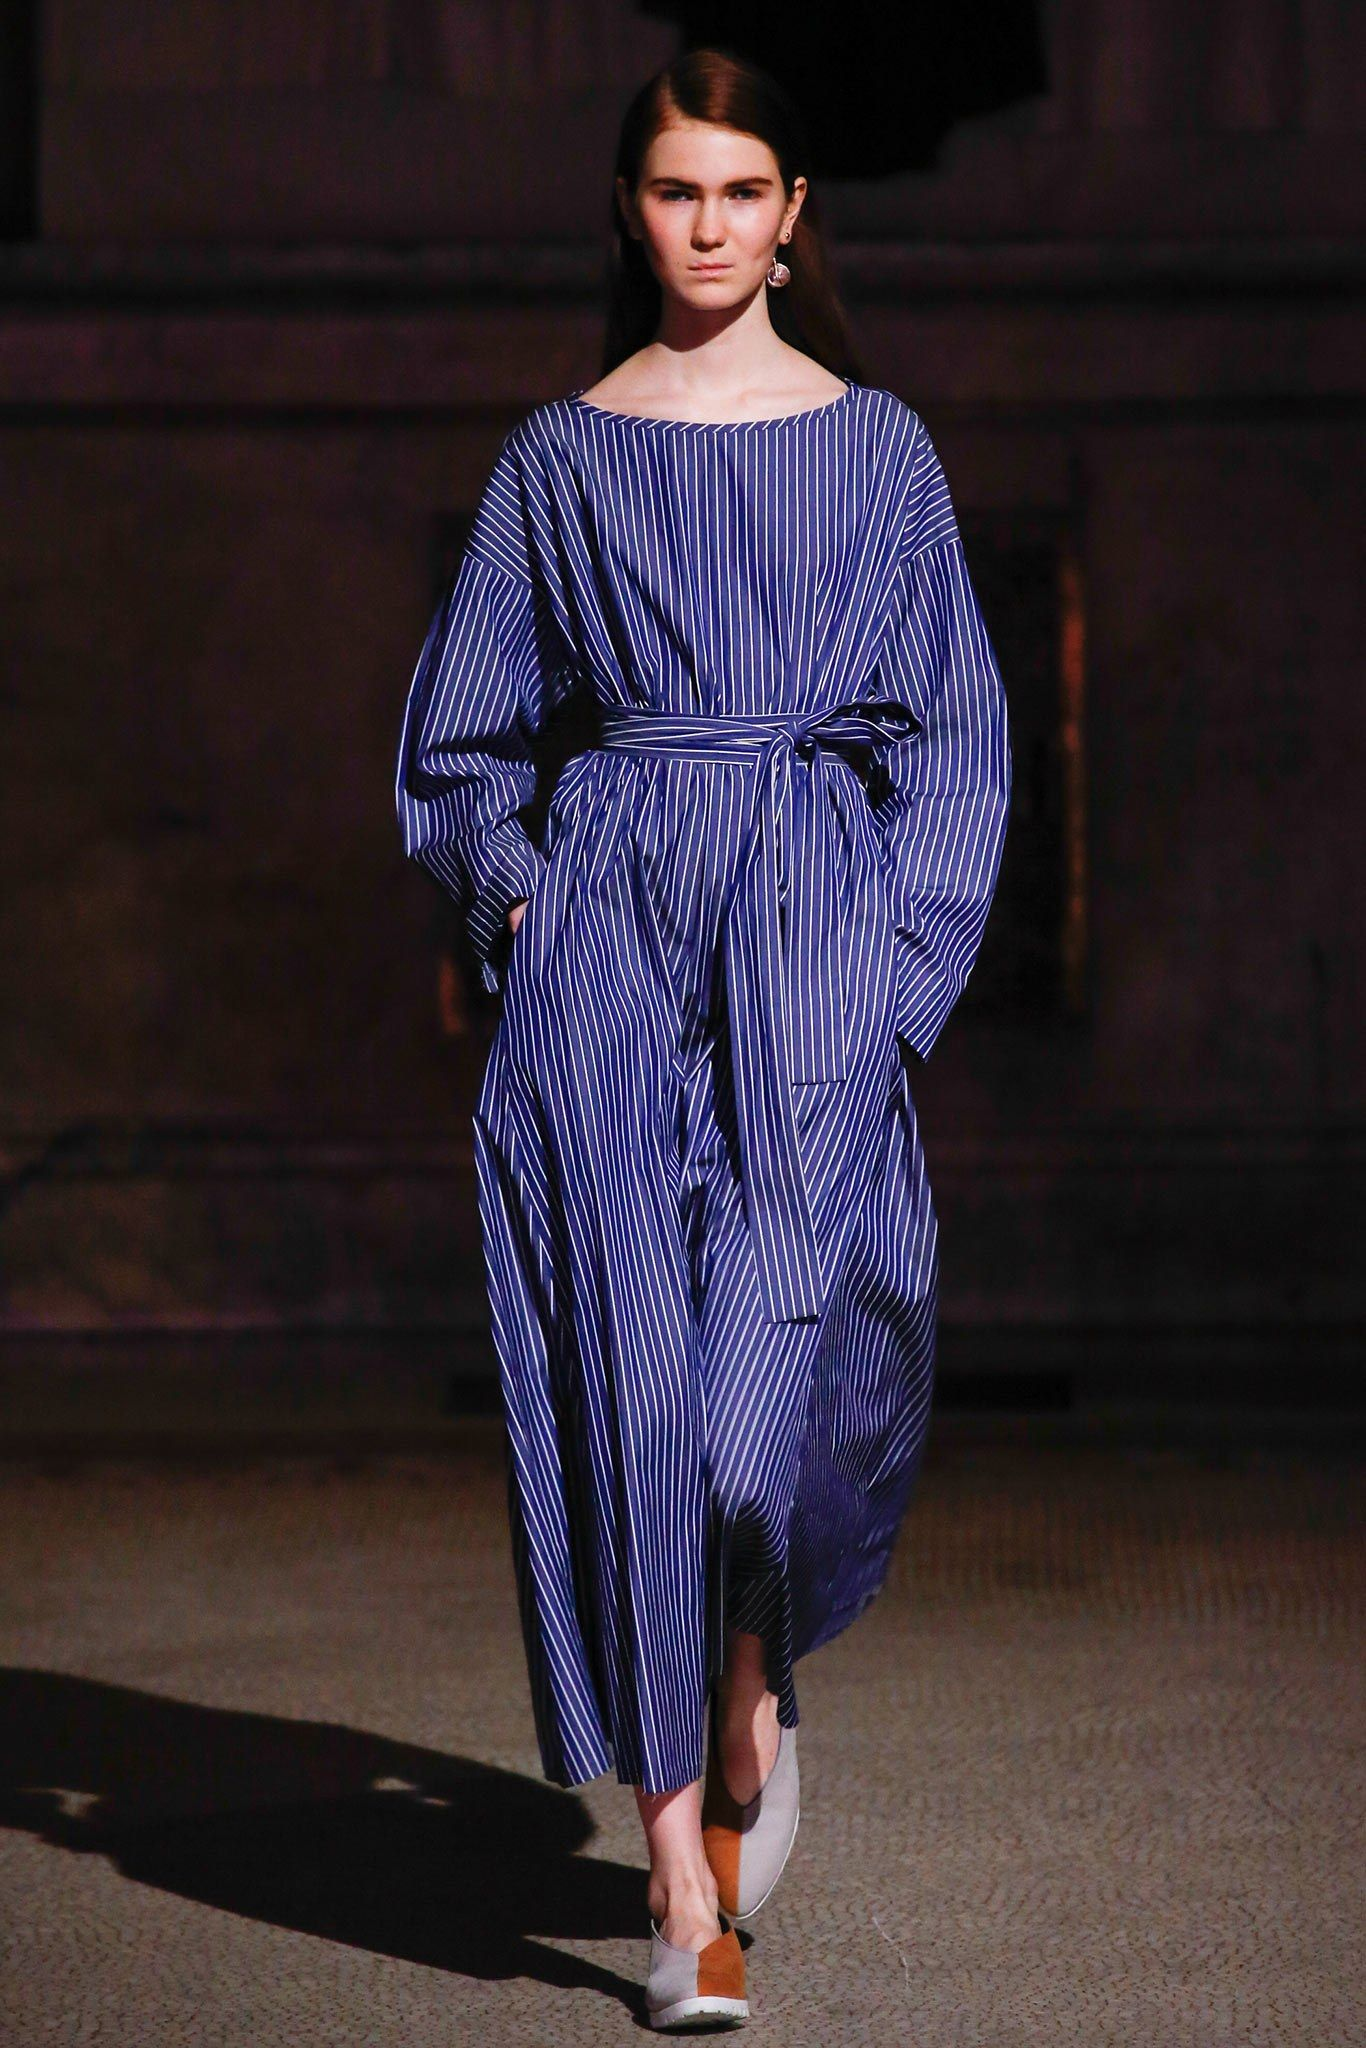 Creatures of Comfort Fall 2015 Ready-to-Wear Fashion Show - Zella Christenson